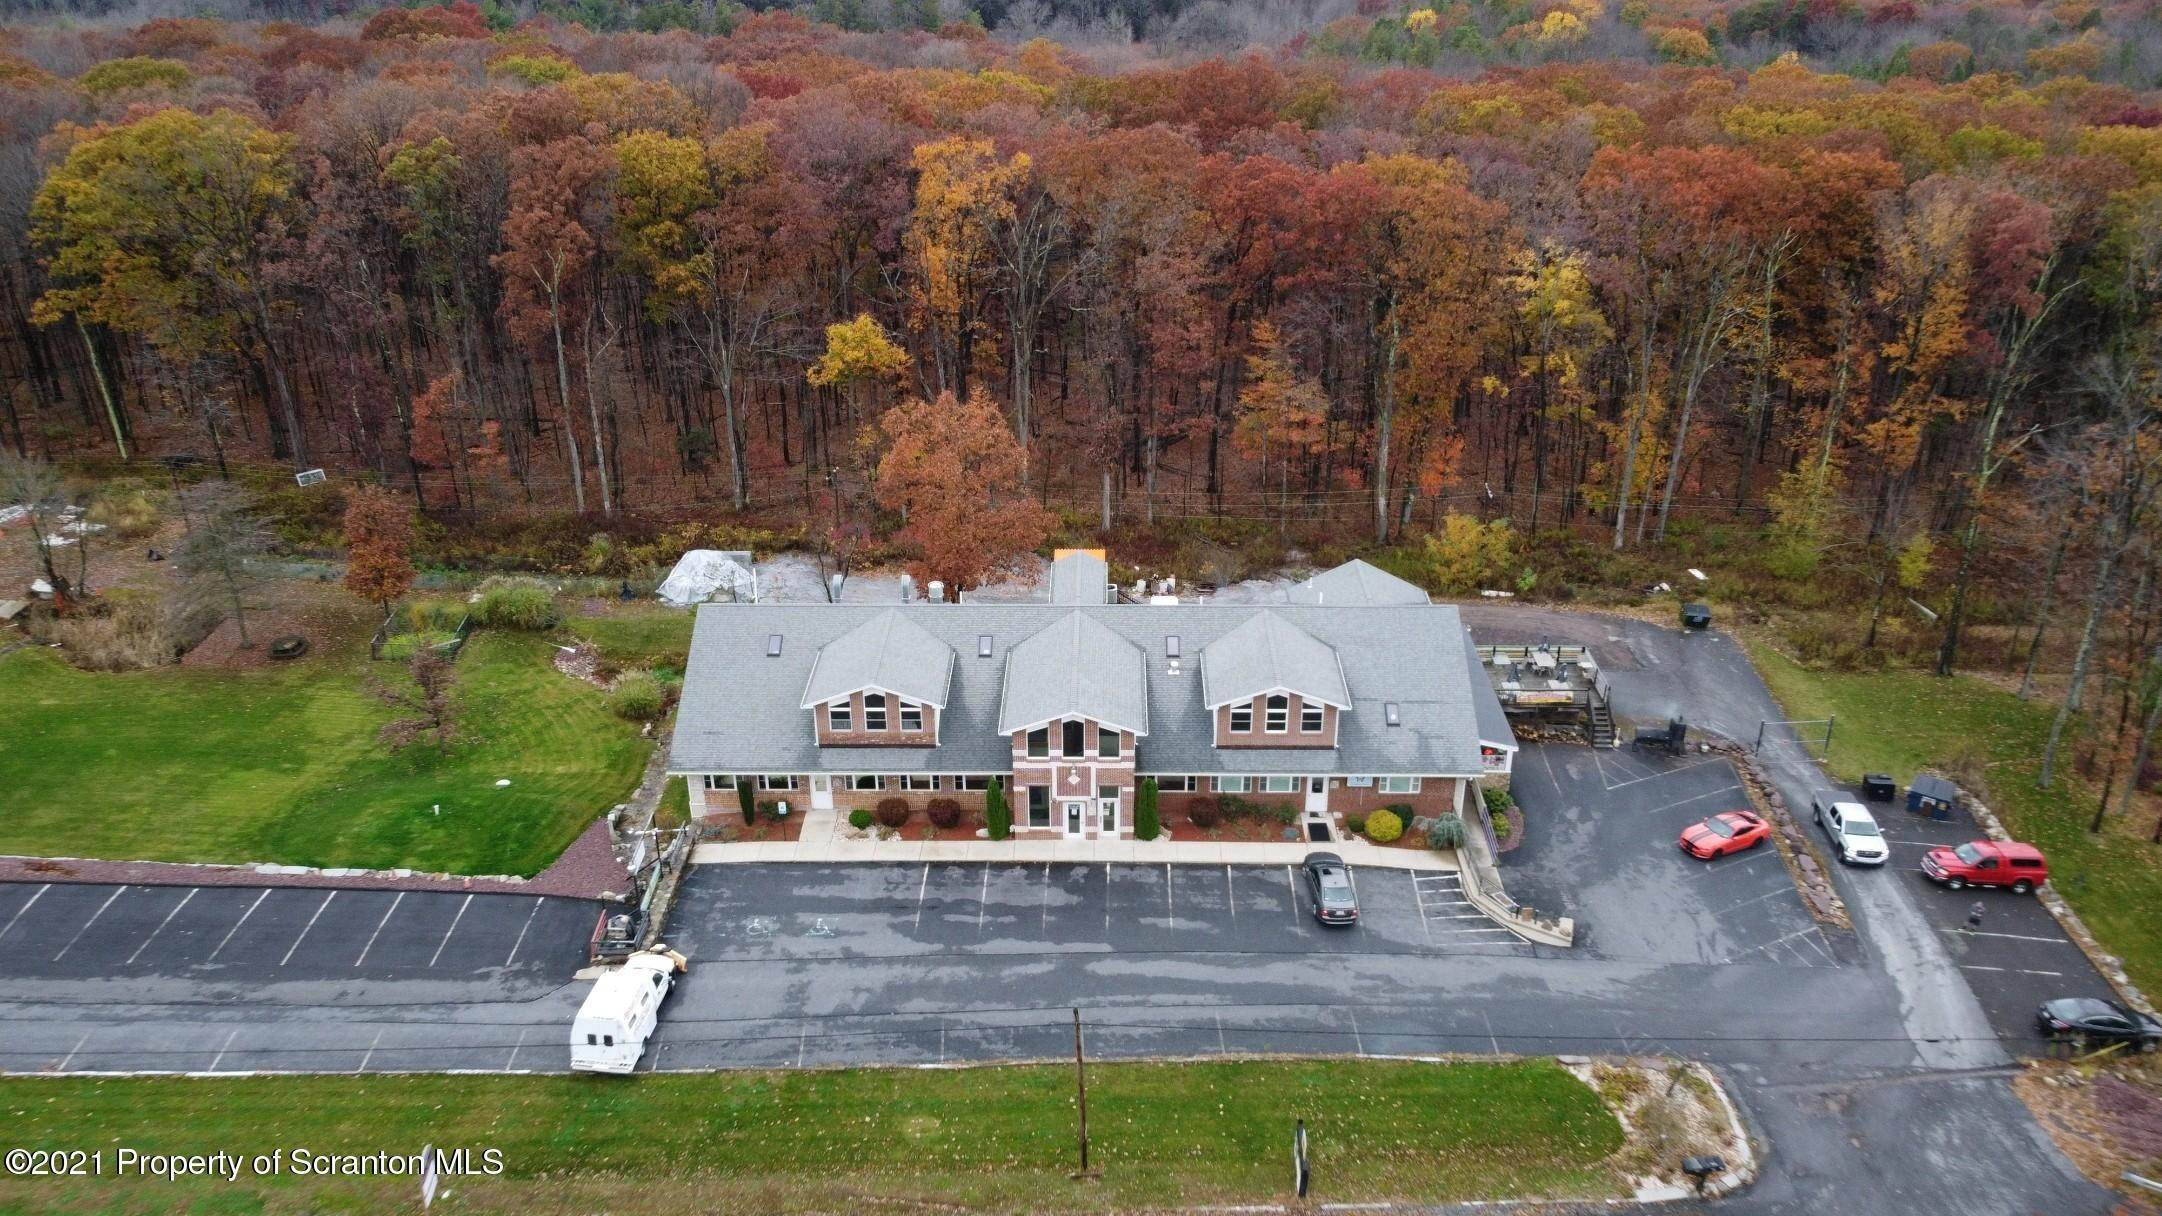 Commercial for Sale at 683 Mountain Boulevard Mountain Top, Pennsylvania 18707 United States